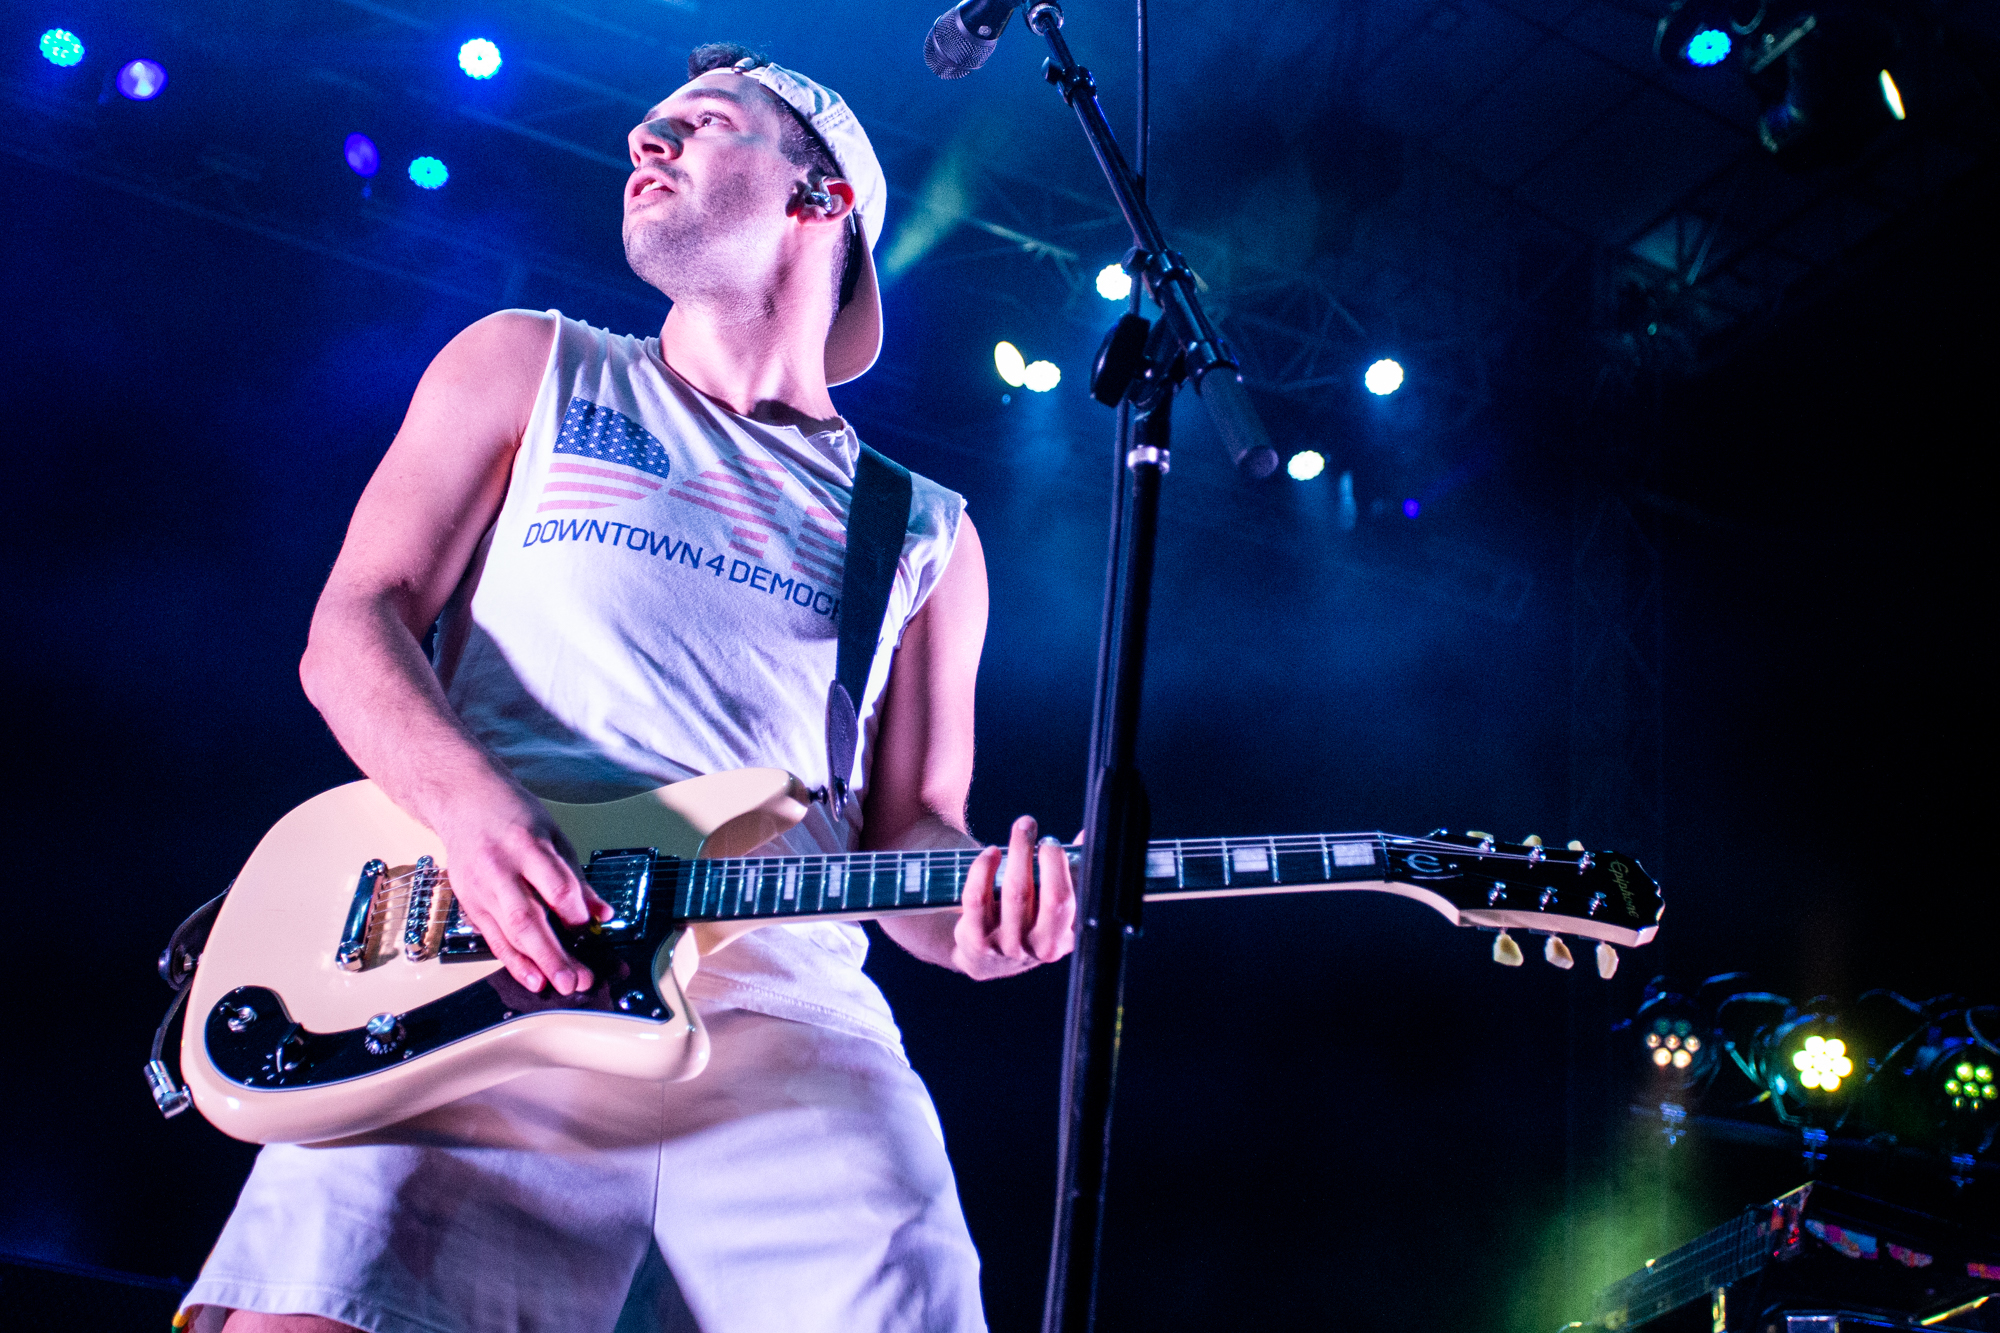 Bleachers performs at Shadow of the City festival in Asbury Park, NJ on August 25, 2018.